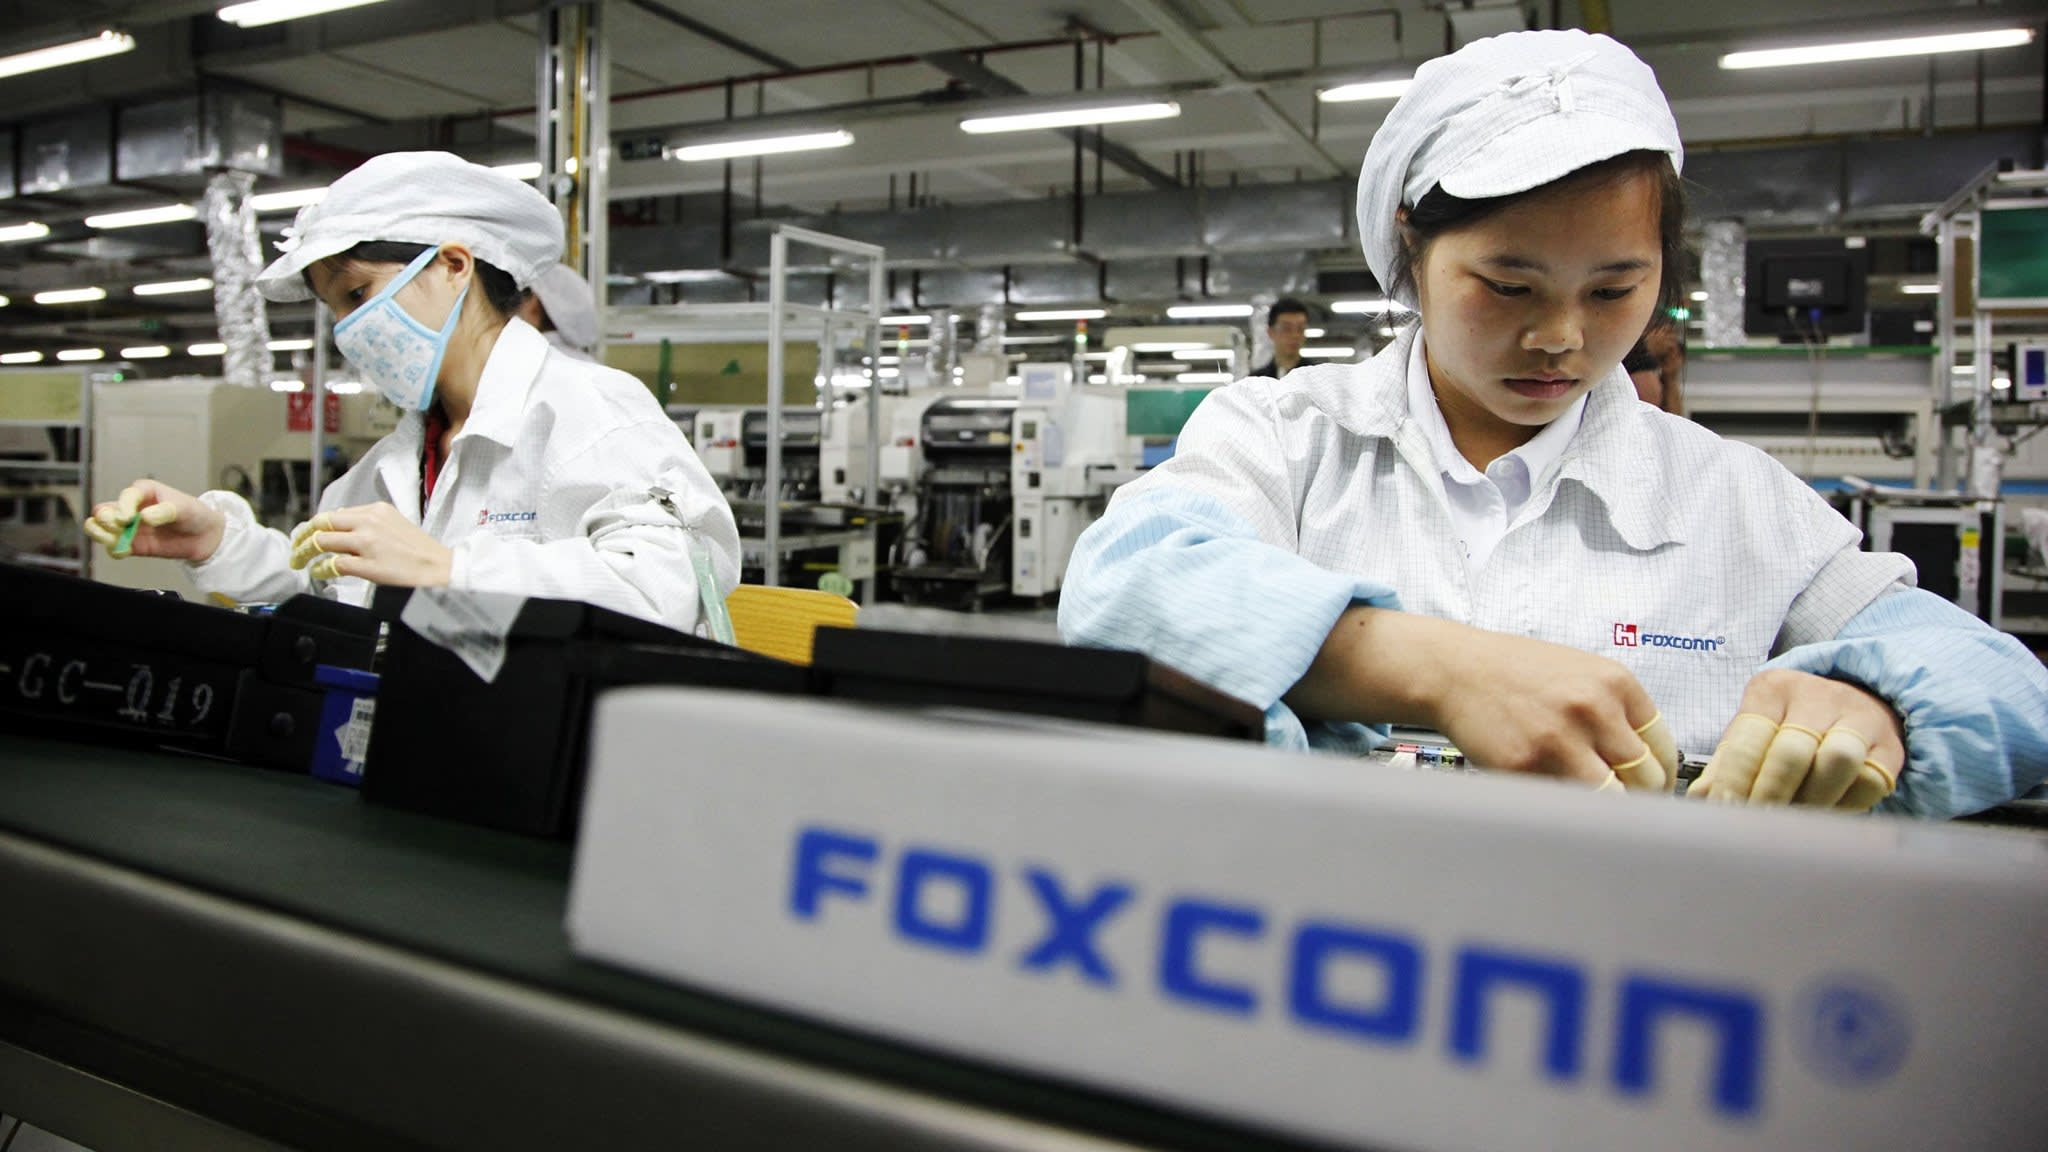 Foxconn slumps as worries build over trade war, iPhone margins | Financial Times